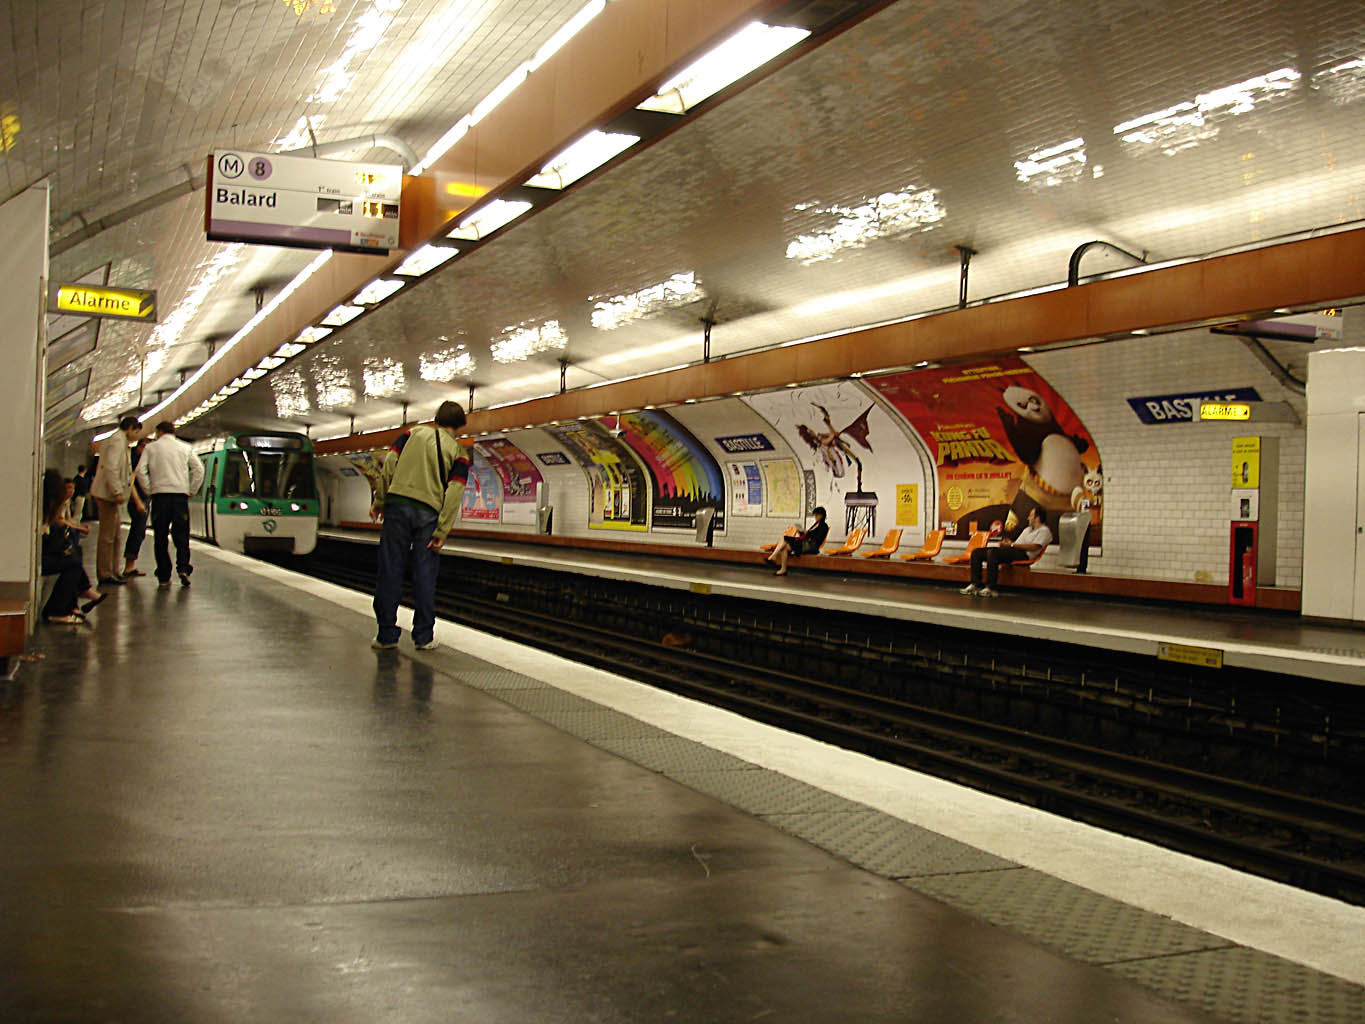 file metro paris ligne 8 station bastille wikimedia commons. Black Bedroom Furniture Sets. Home Design Ideas